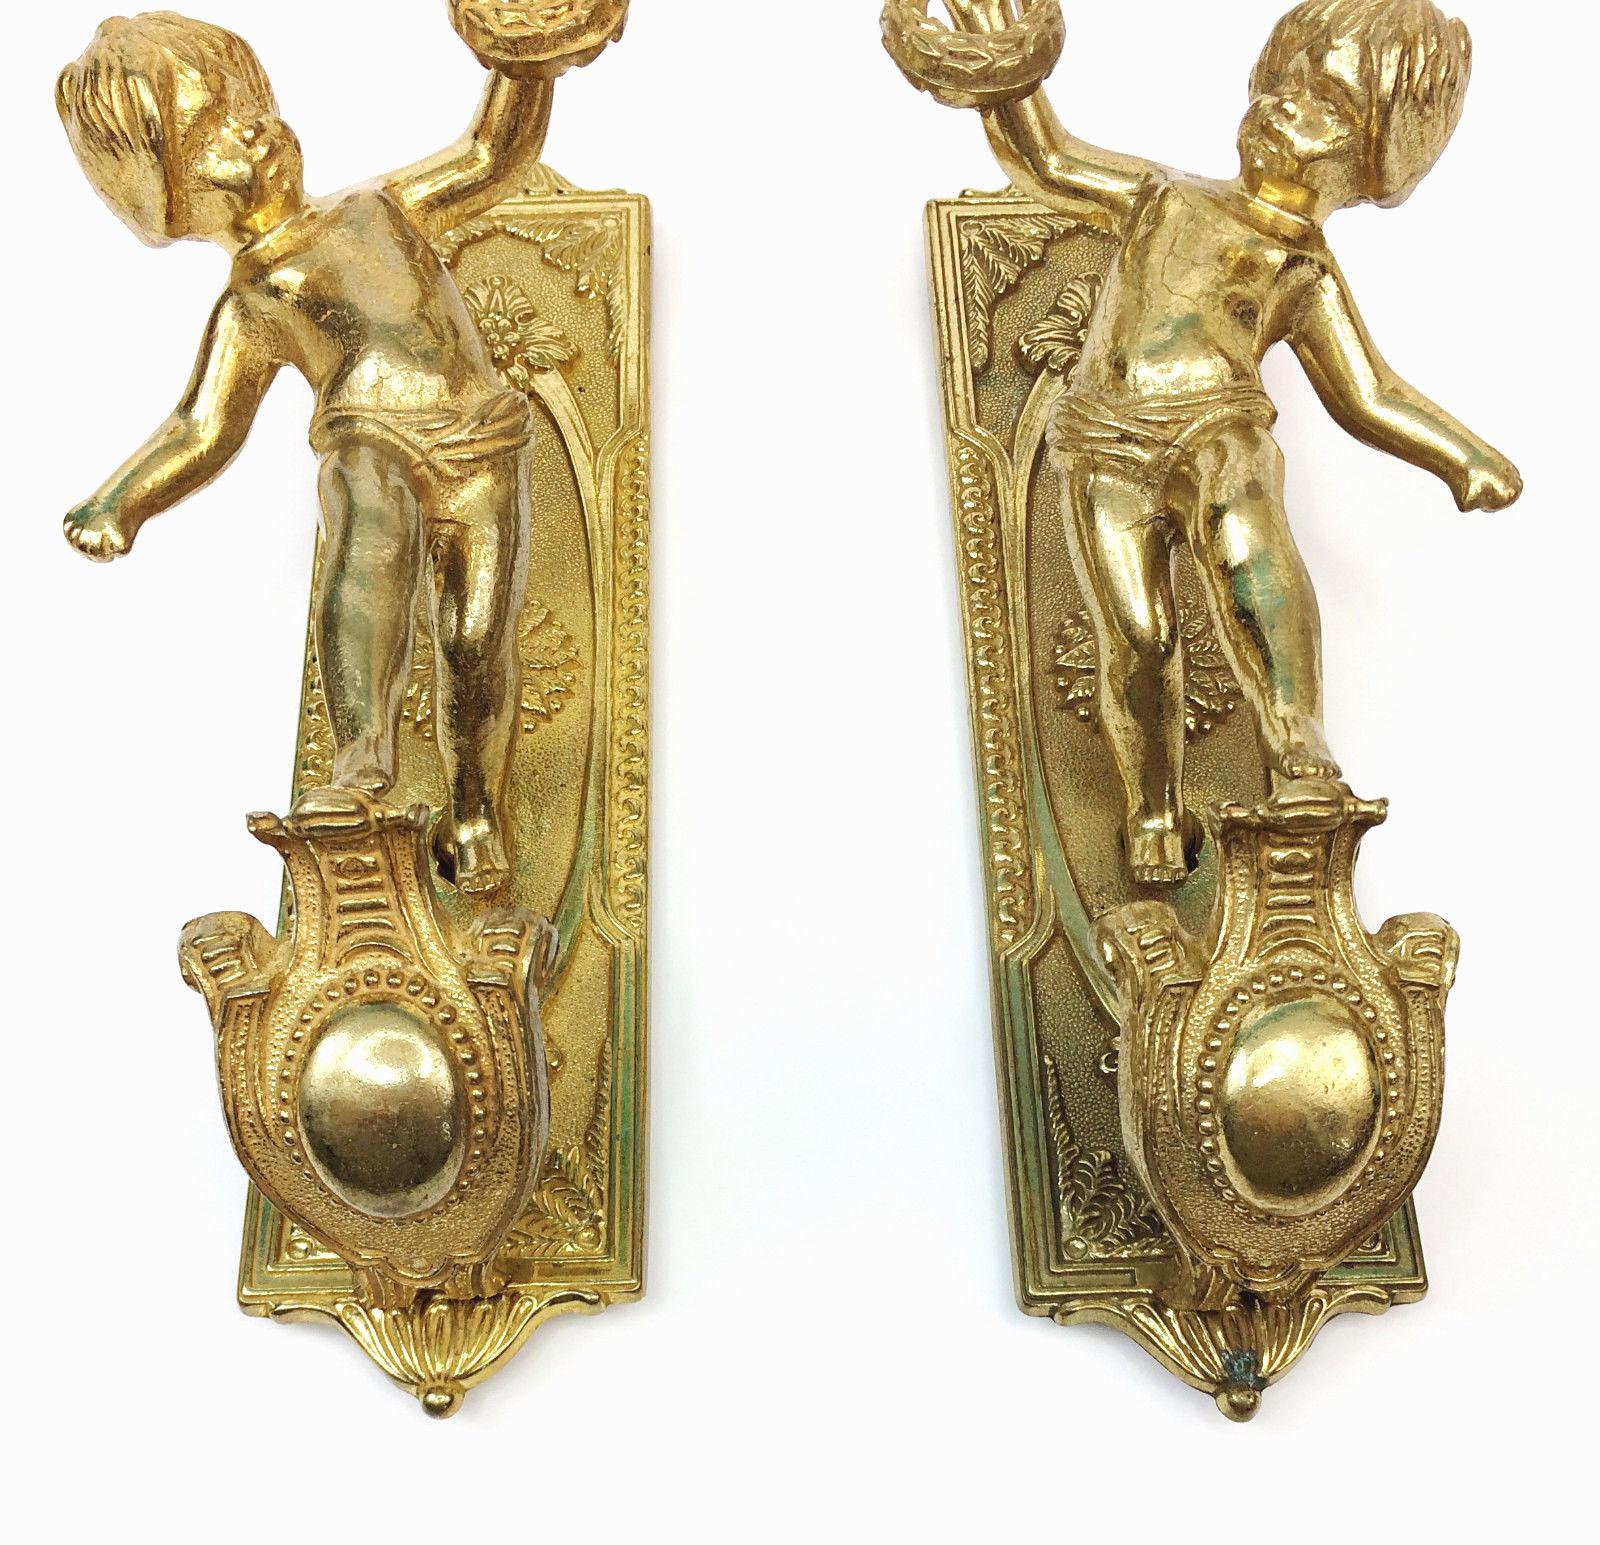 Vintage Italian Brass Cherub Candle Wall Sconces   A Pair   Image 2 Of 5